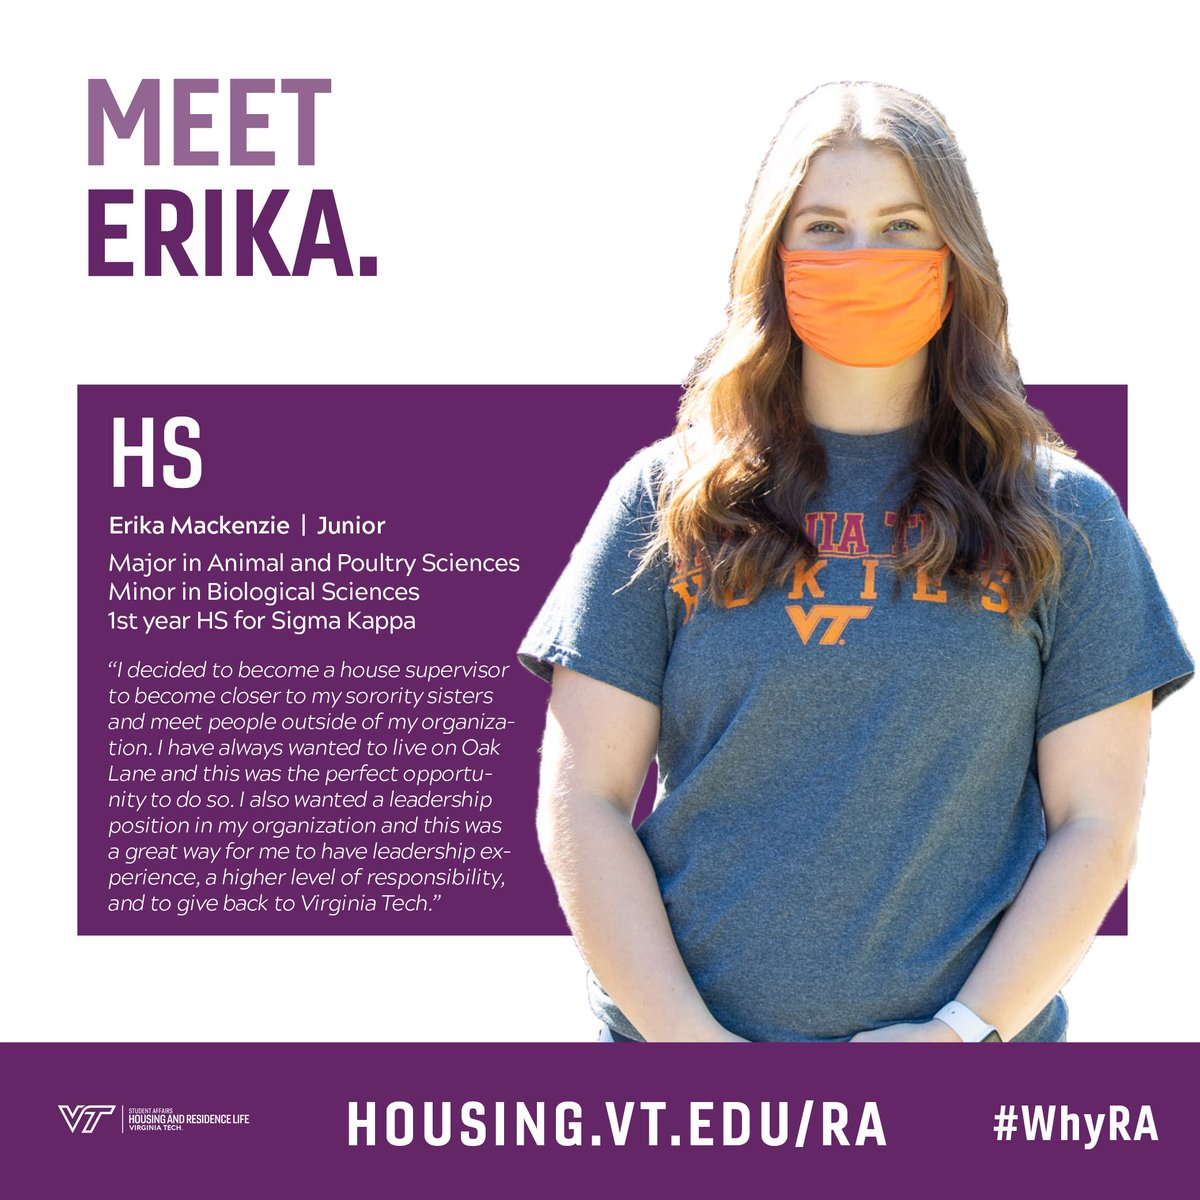 Meet House Supervisor Erika Mackenzie, a 1st year HS for Sigma Kappa in Oak Lane! Apply now to become a House Supervisor or Resident Advisor! Head to https://t.co/ZKi7CWVae6  #WhyRA #VTHRL #VirginiaTech #HouseSupervisor #ResidentAdvisor https://t.co/TD6ND6TKTj